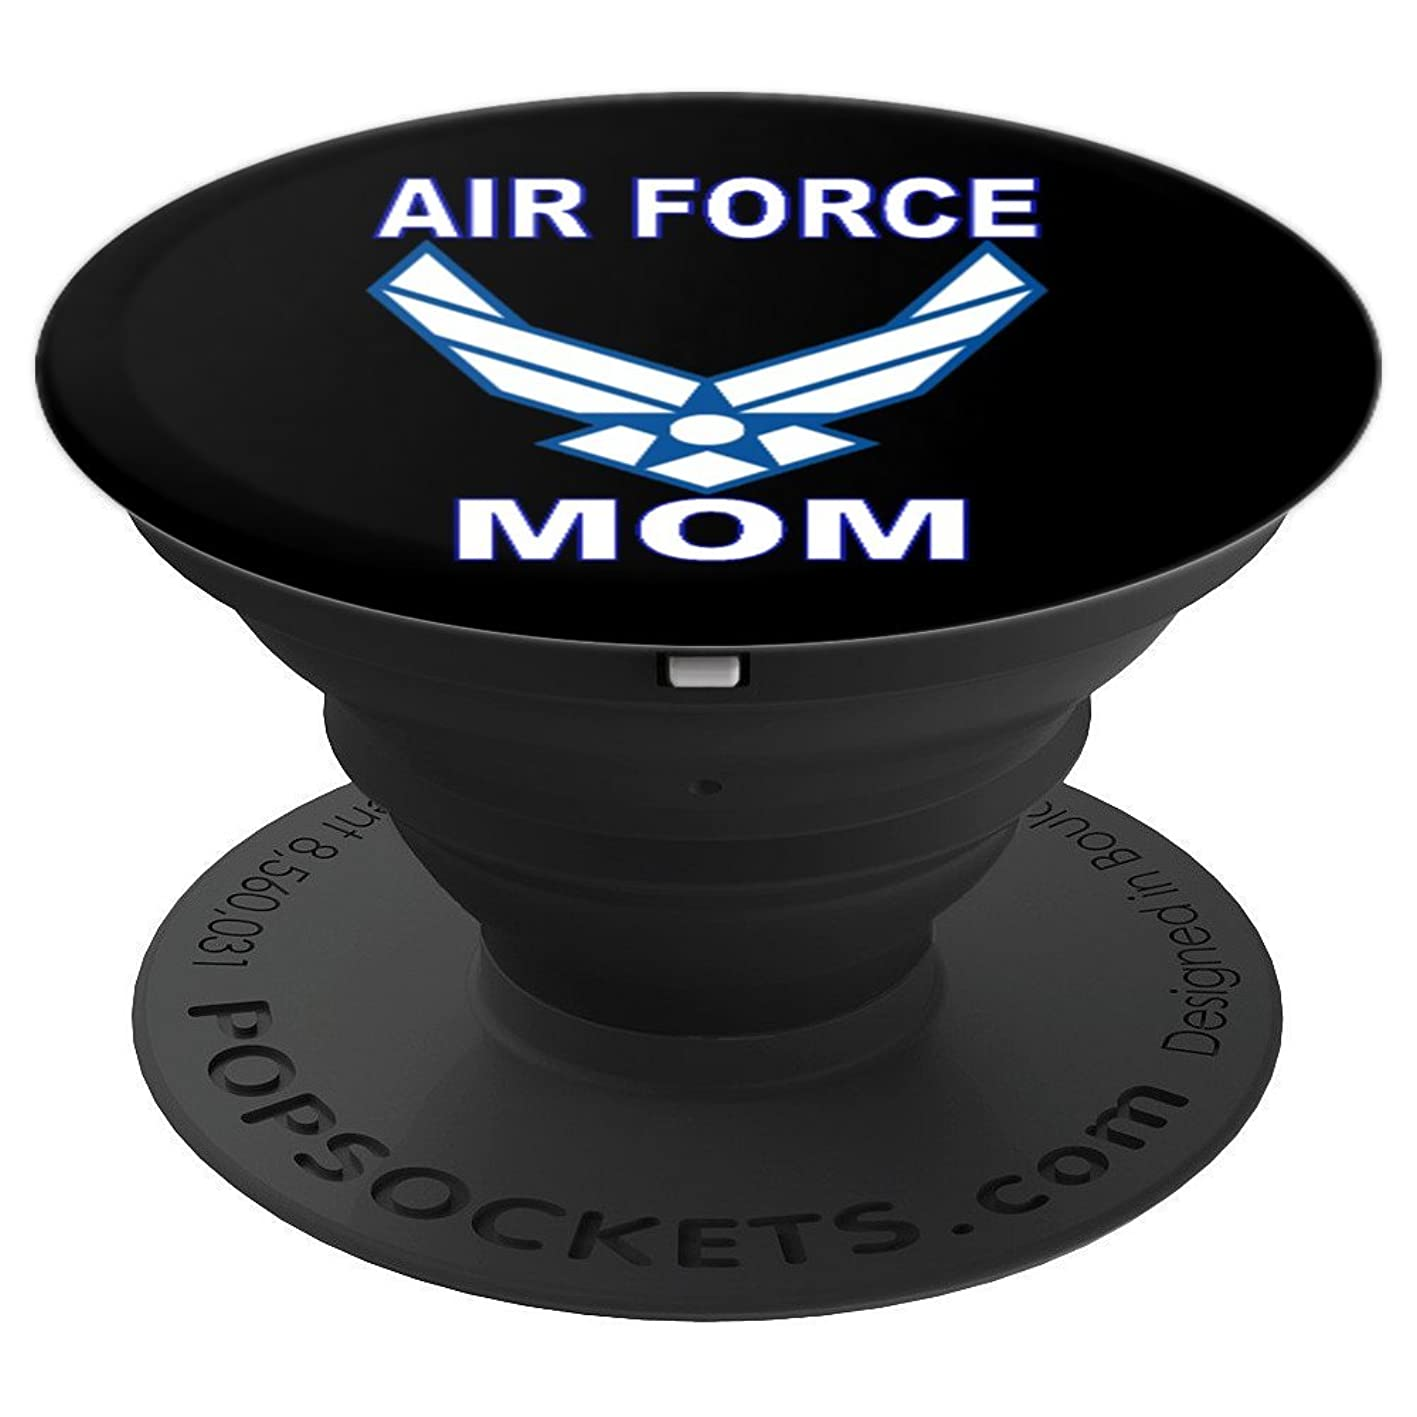 Air Force Mom - PopSockets Grip and Stand for Phones and Tablets nugflnukqlu435